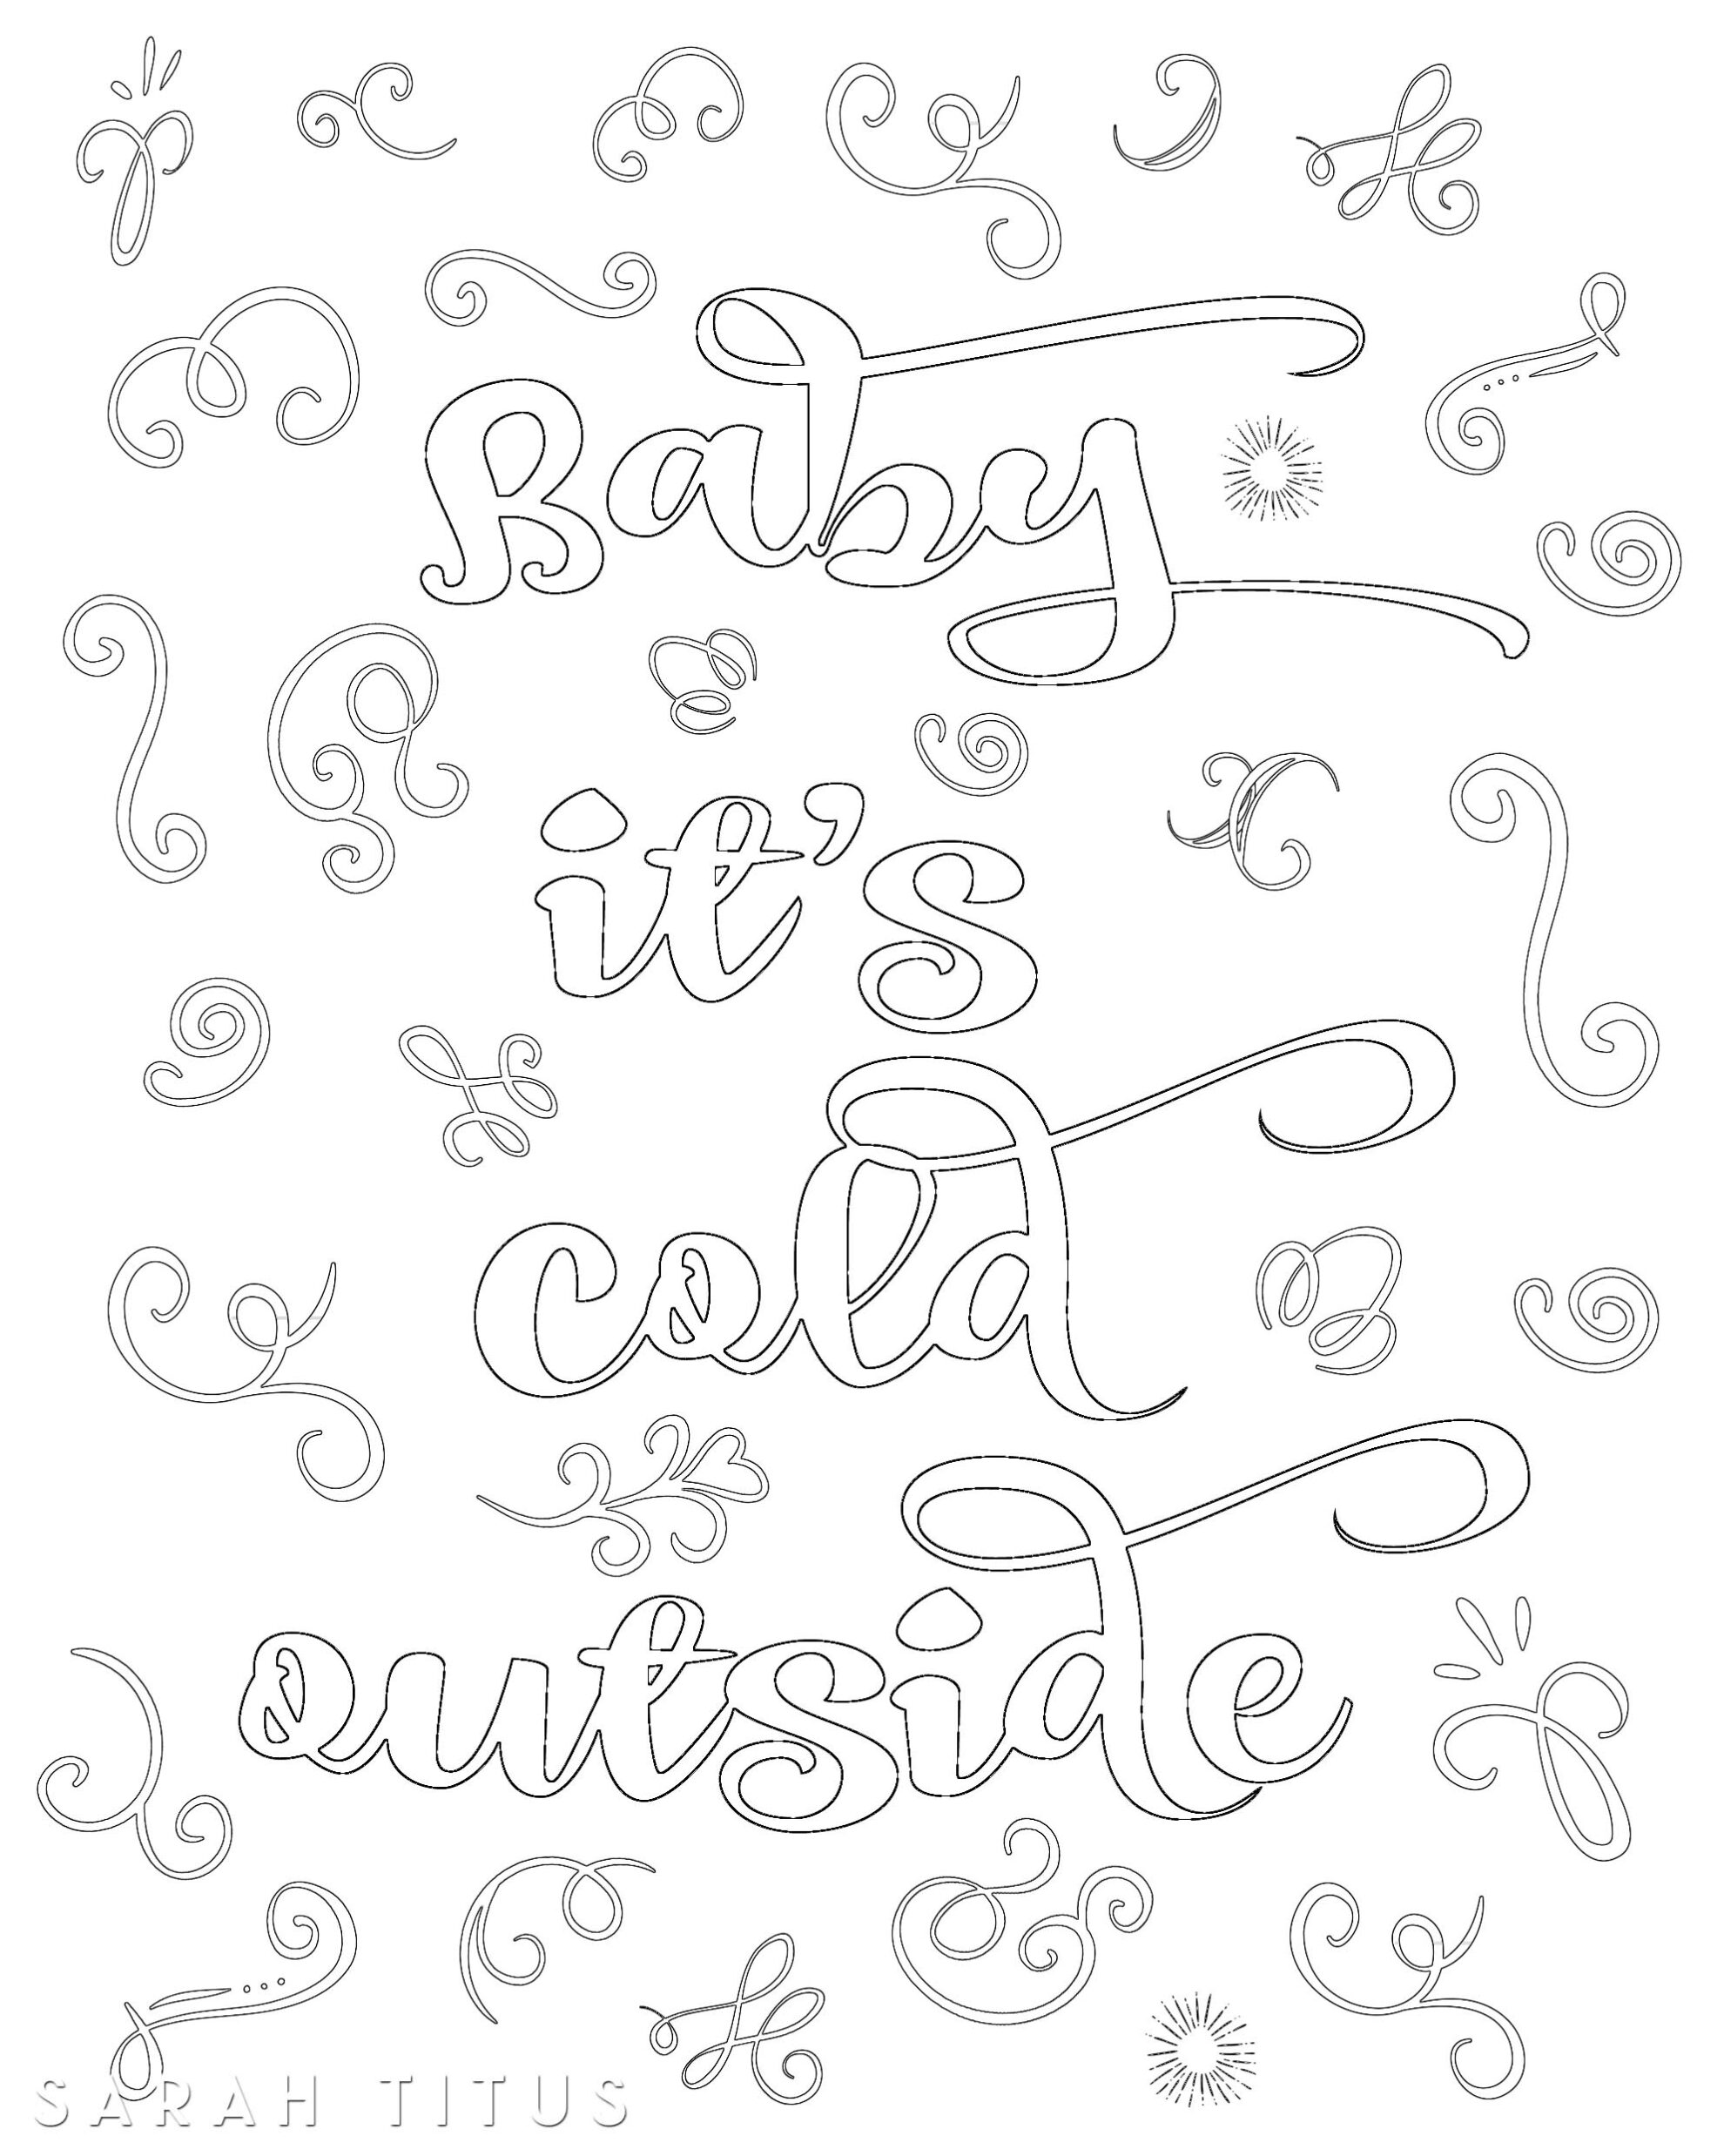 Free Printable Christmas Coloring Sheets Sarah Titus